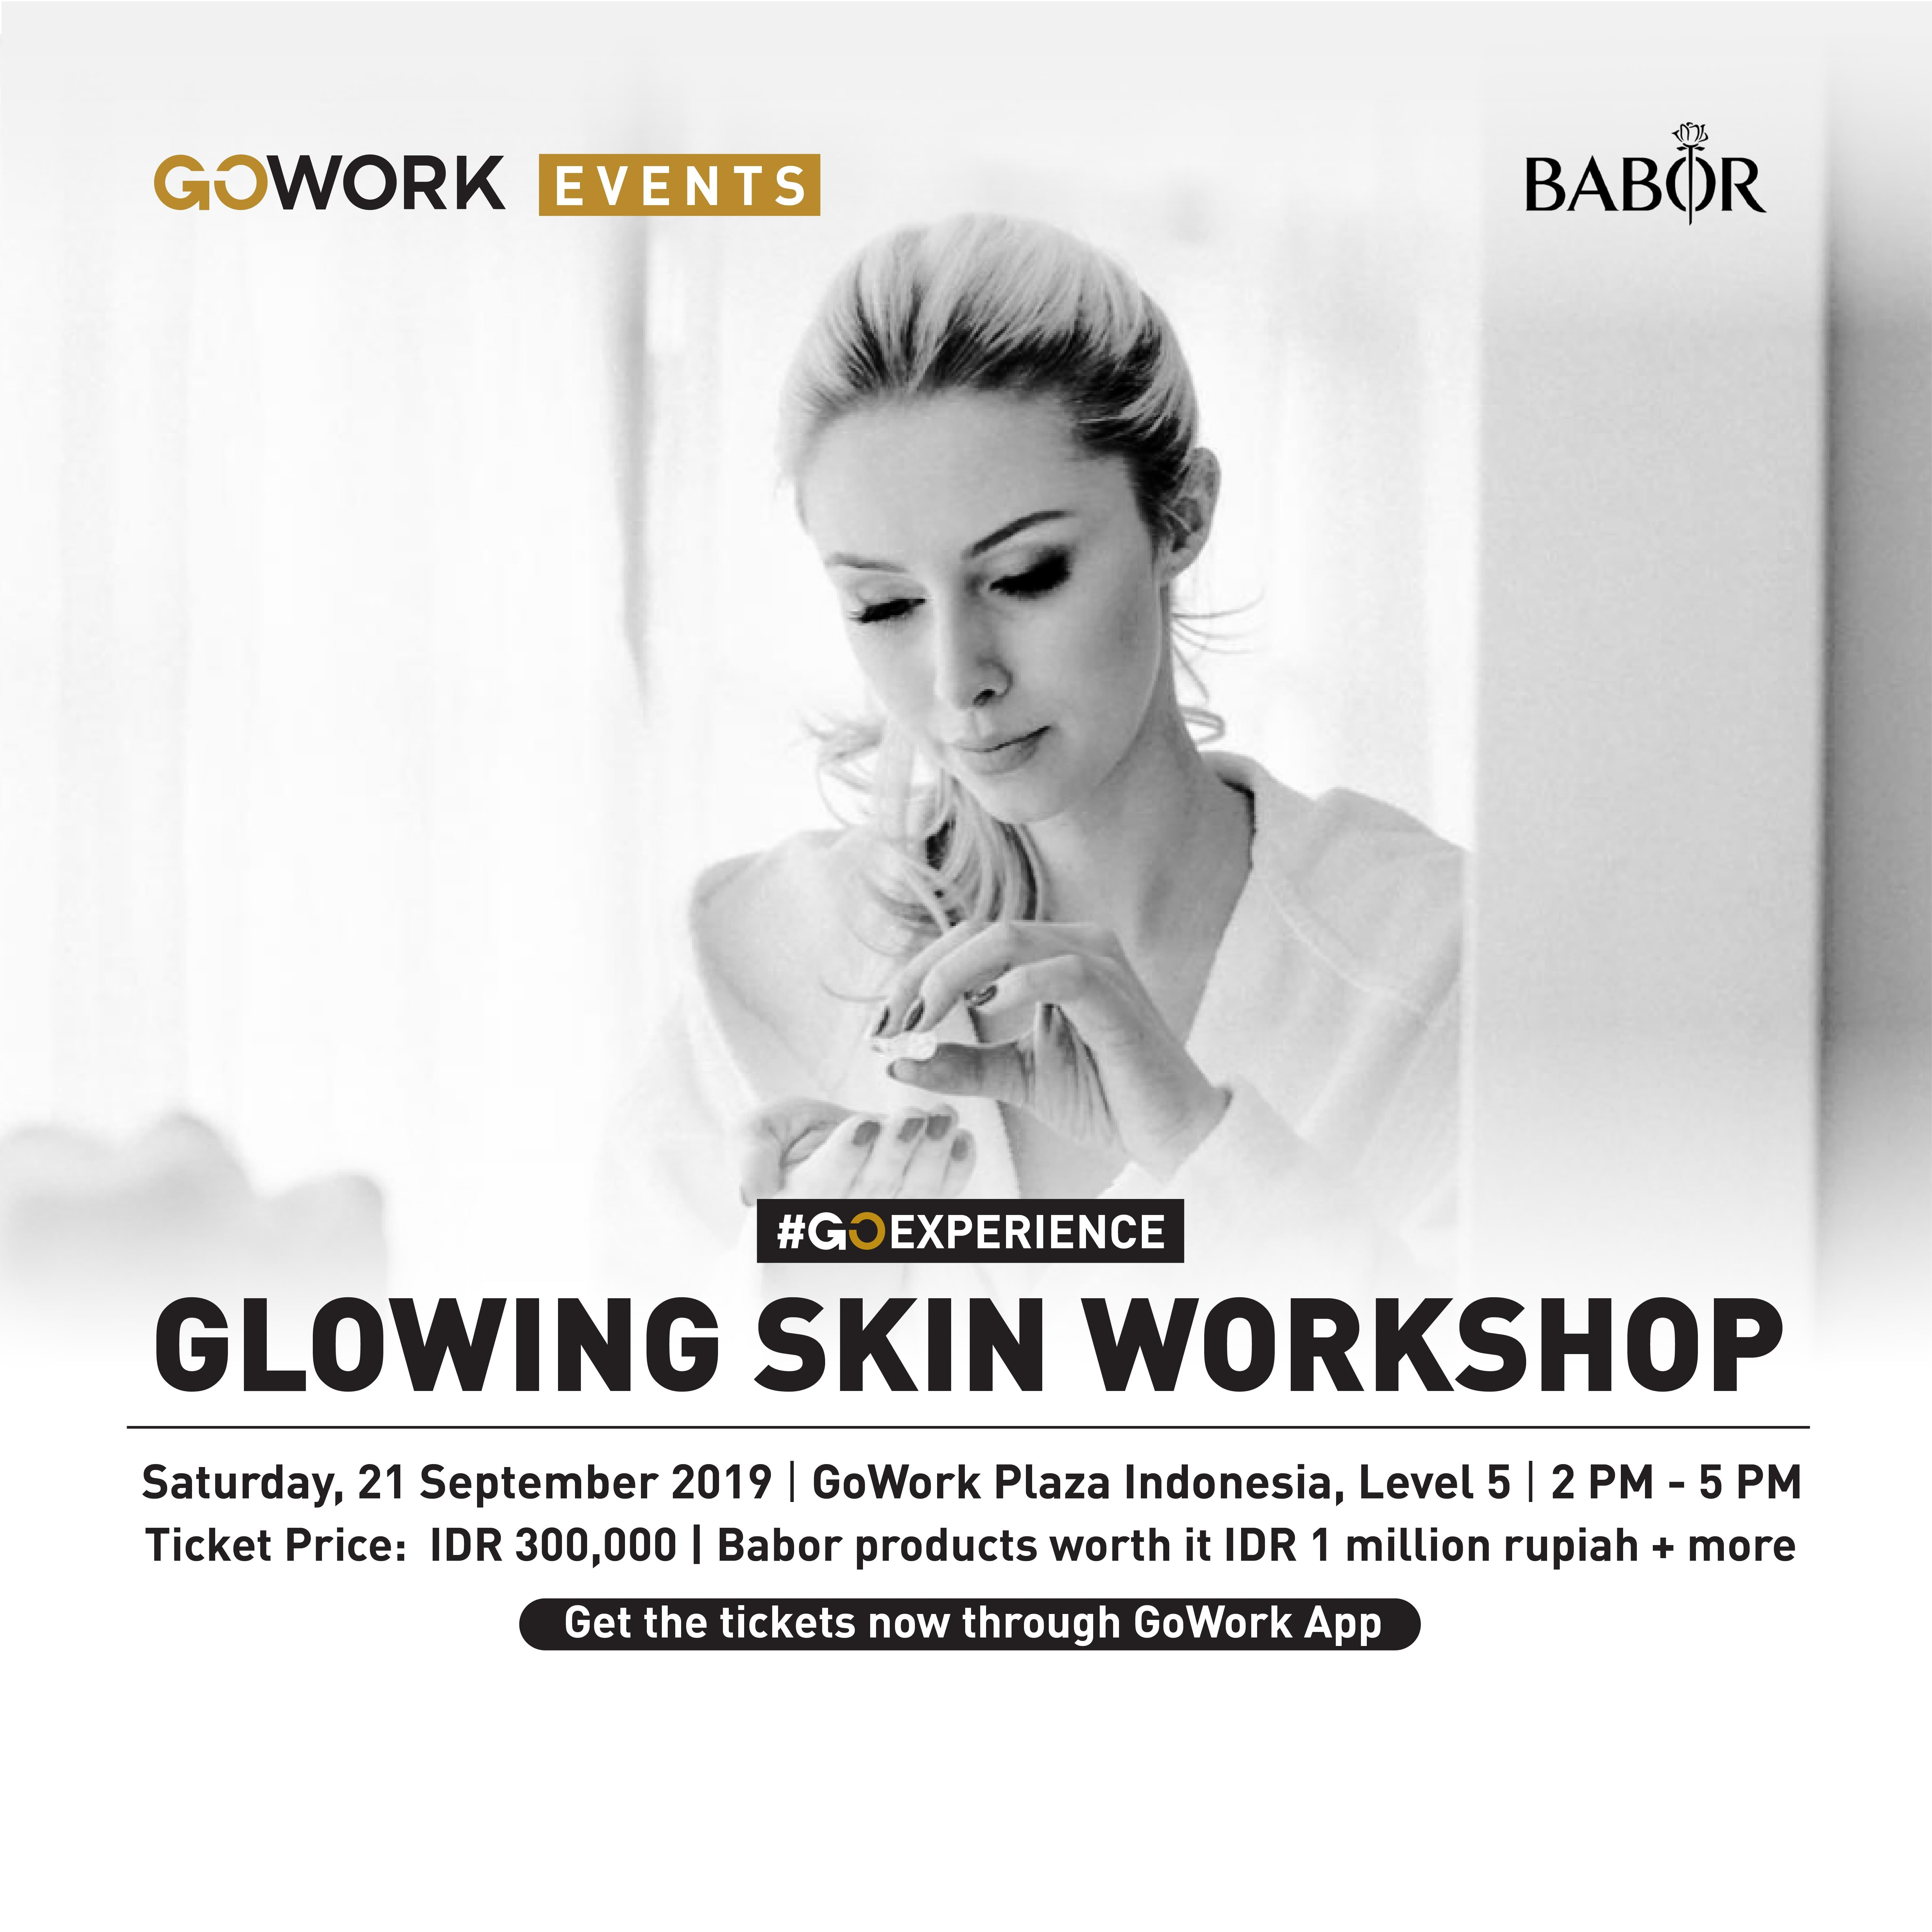 Glowing Skin Workshop with Babor Indonesia